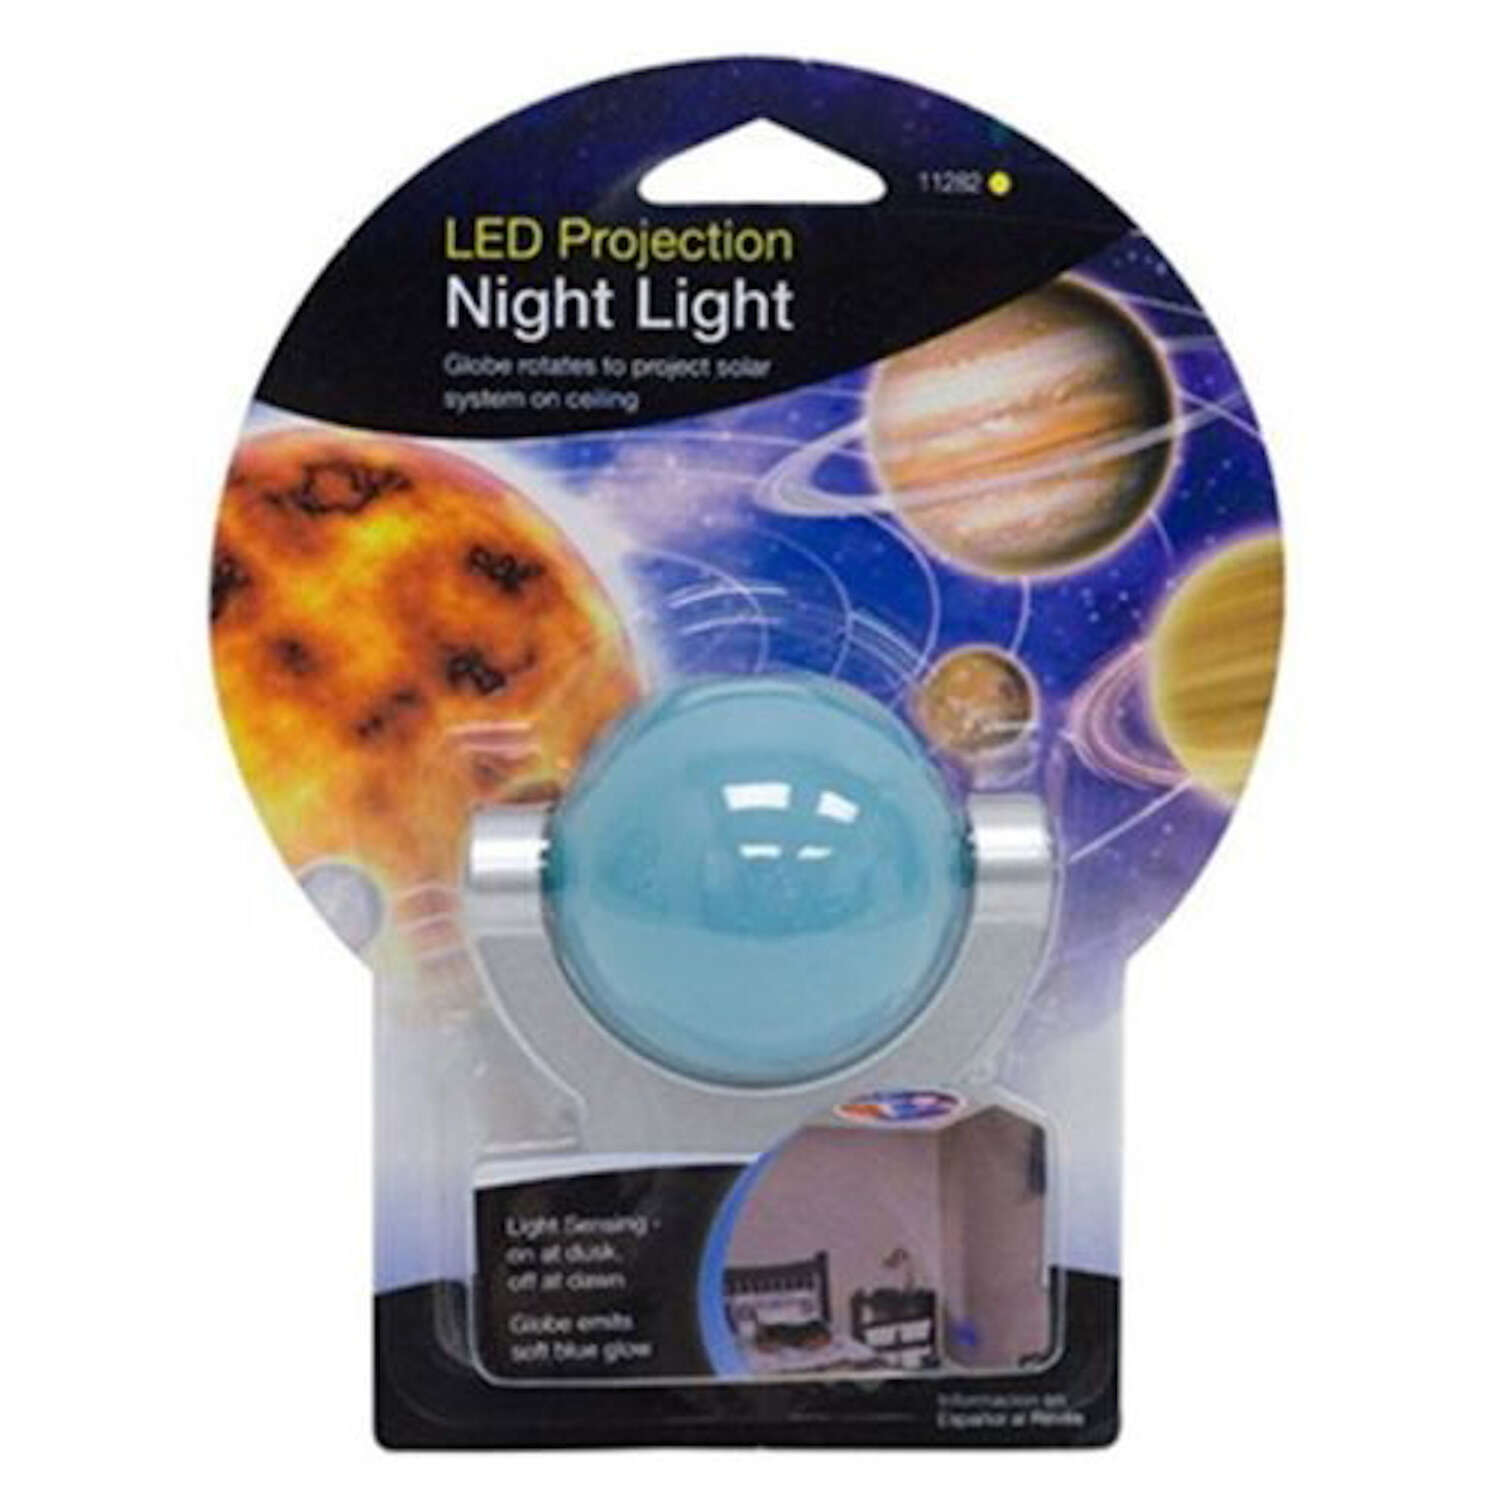 GE  Projectables  Automatic  Plug-in  Solar System  LED  Night Light